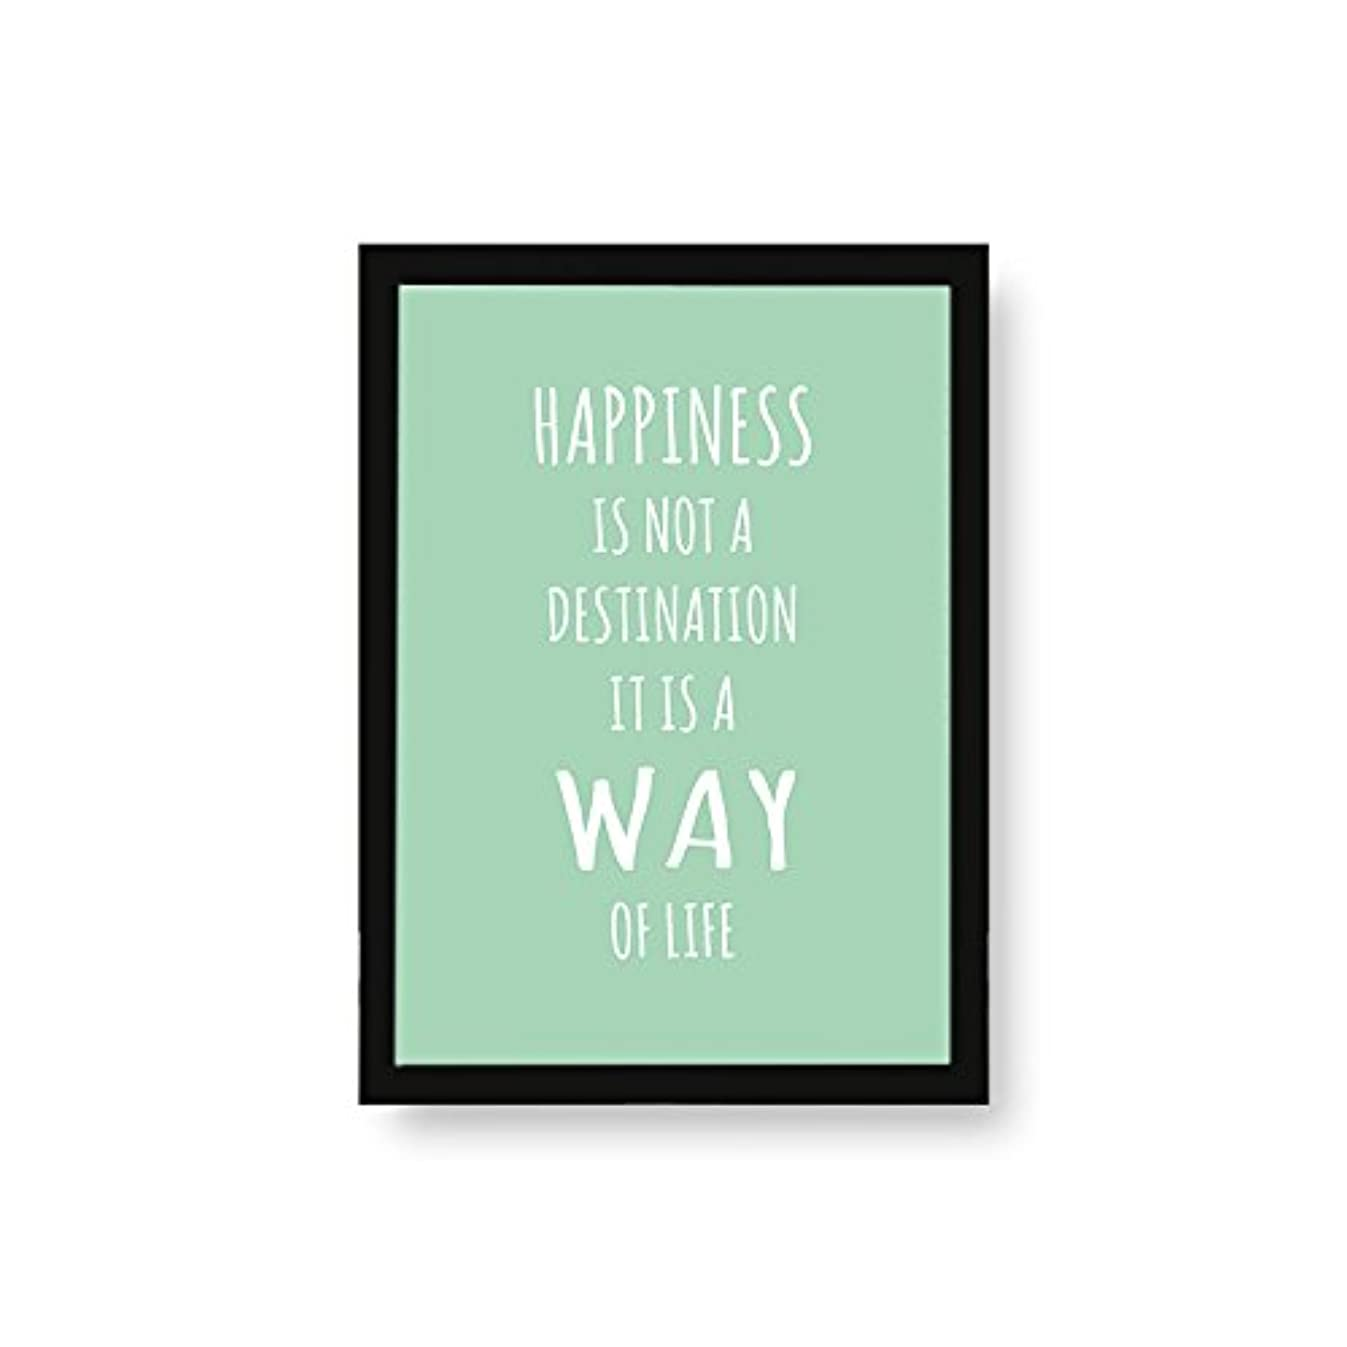 Kenay Home Art Happiness A3, Paper, Mint, 297?x 420?mm